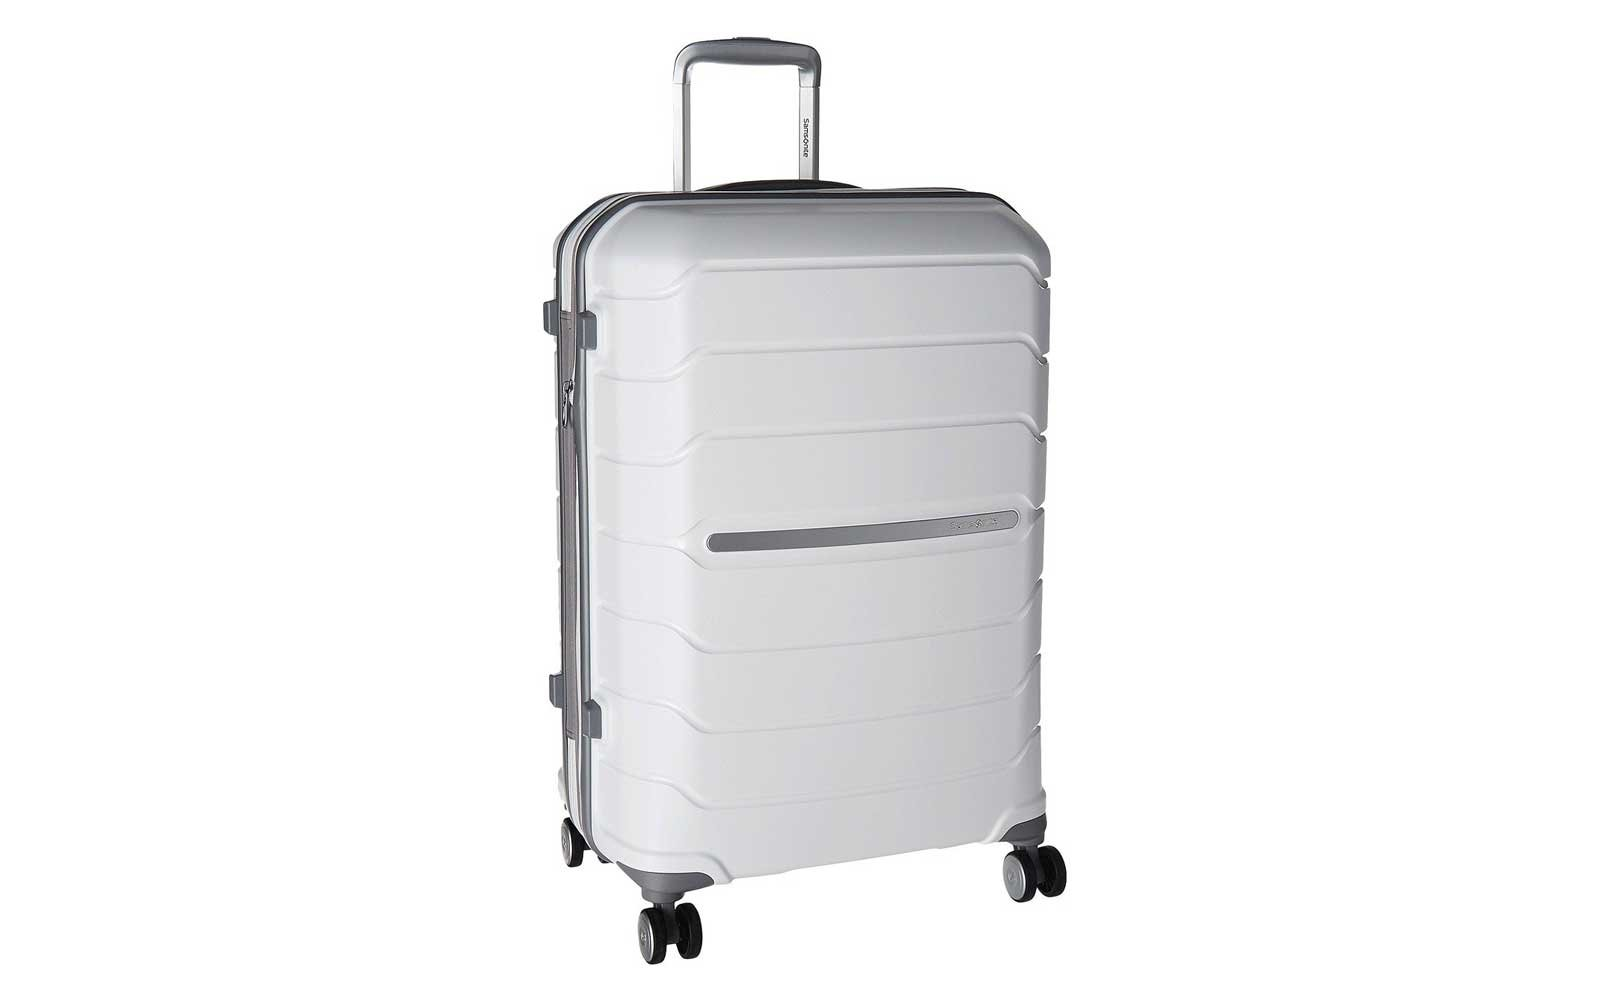 Samsonite White Suitcase